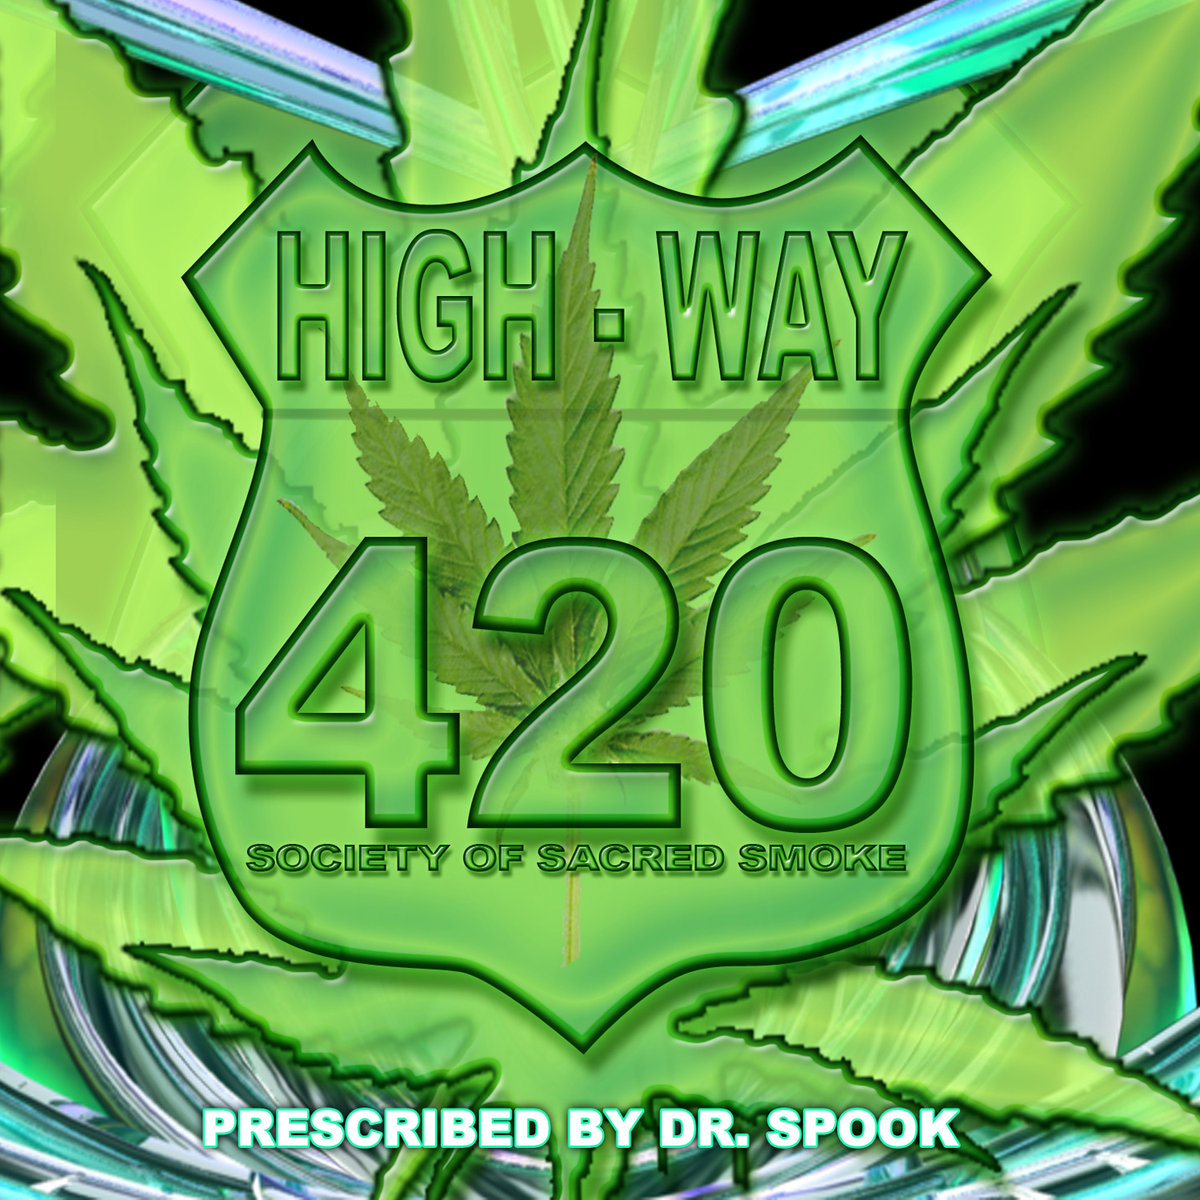 Twisted Reaction - Roll It @ 'Various Artists - High-Way 420: Society Of Sacred Smoke (Prescribed by Dr. Spook)' album (electronic, goa)